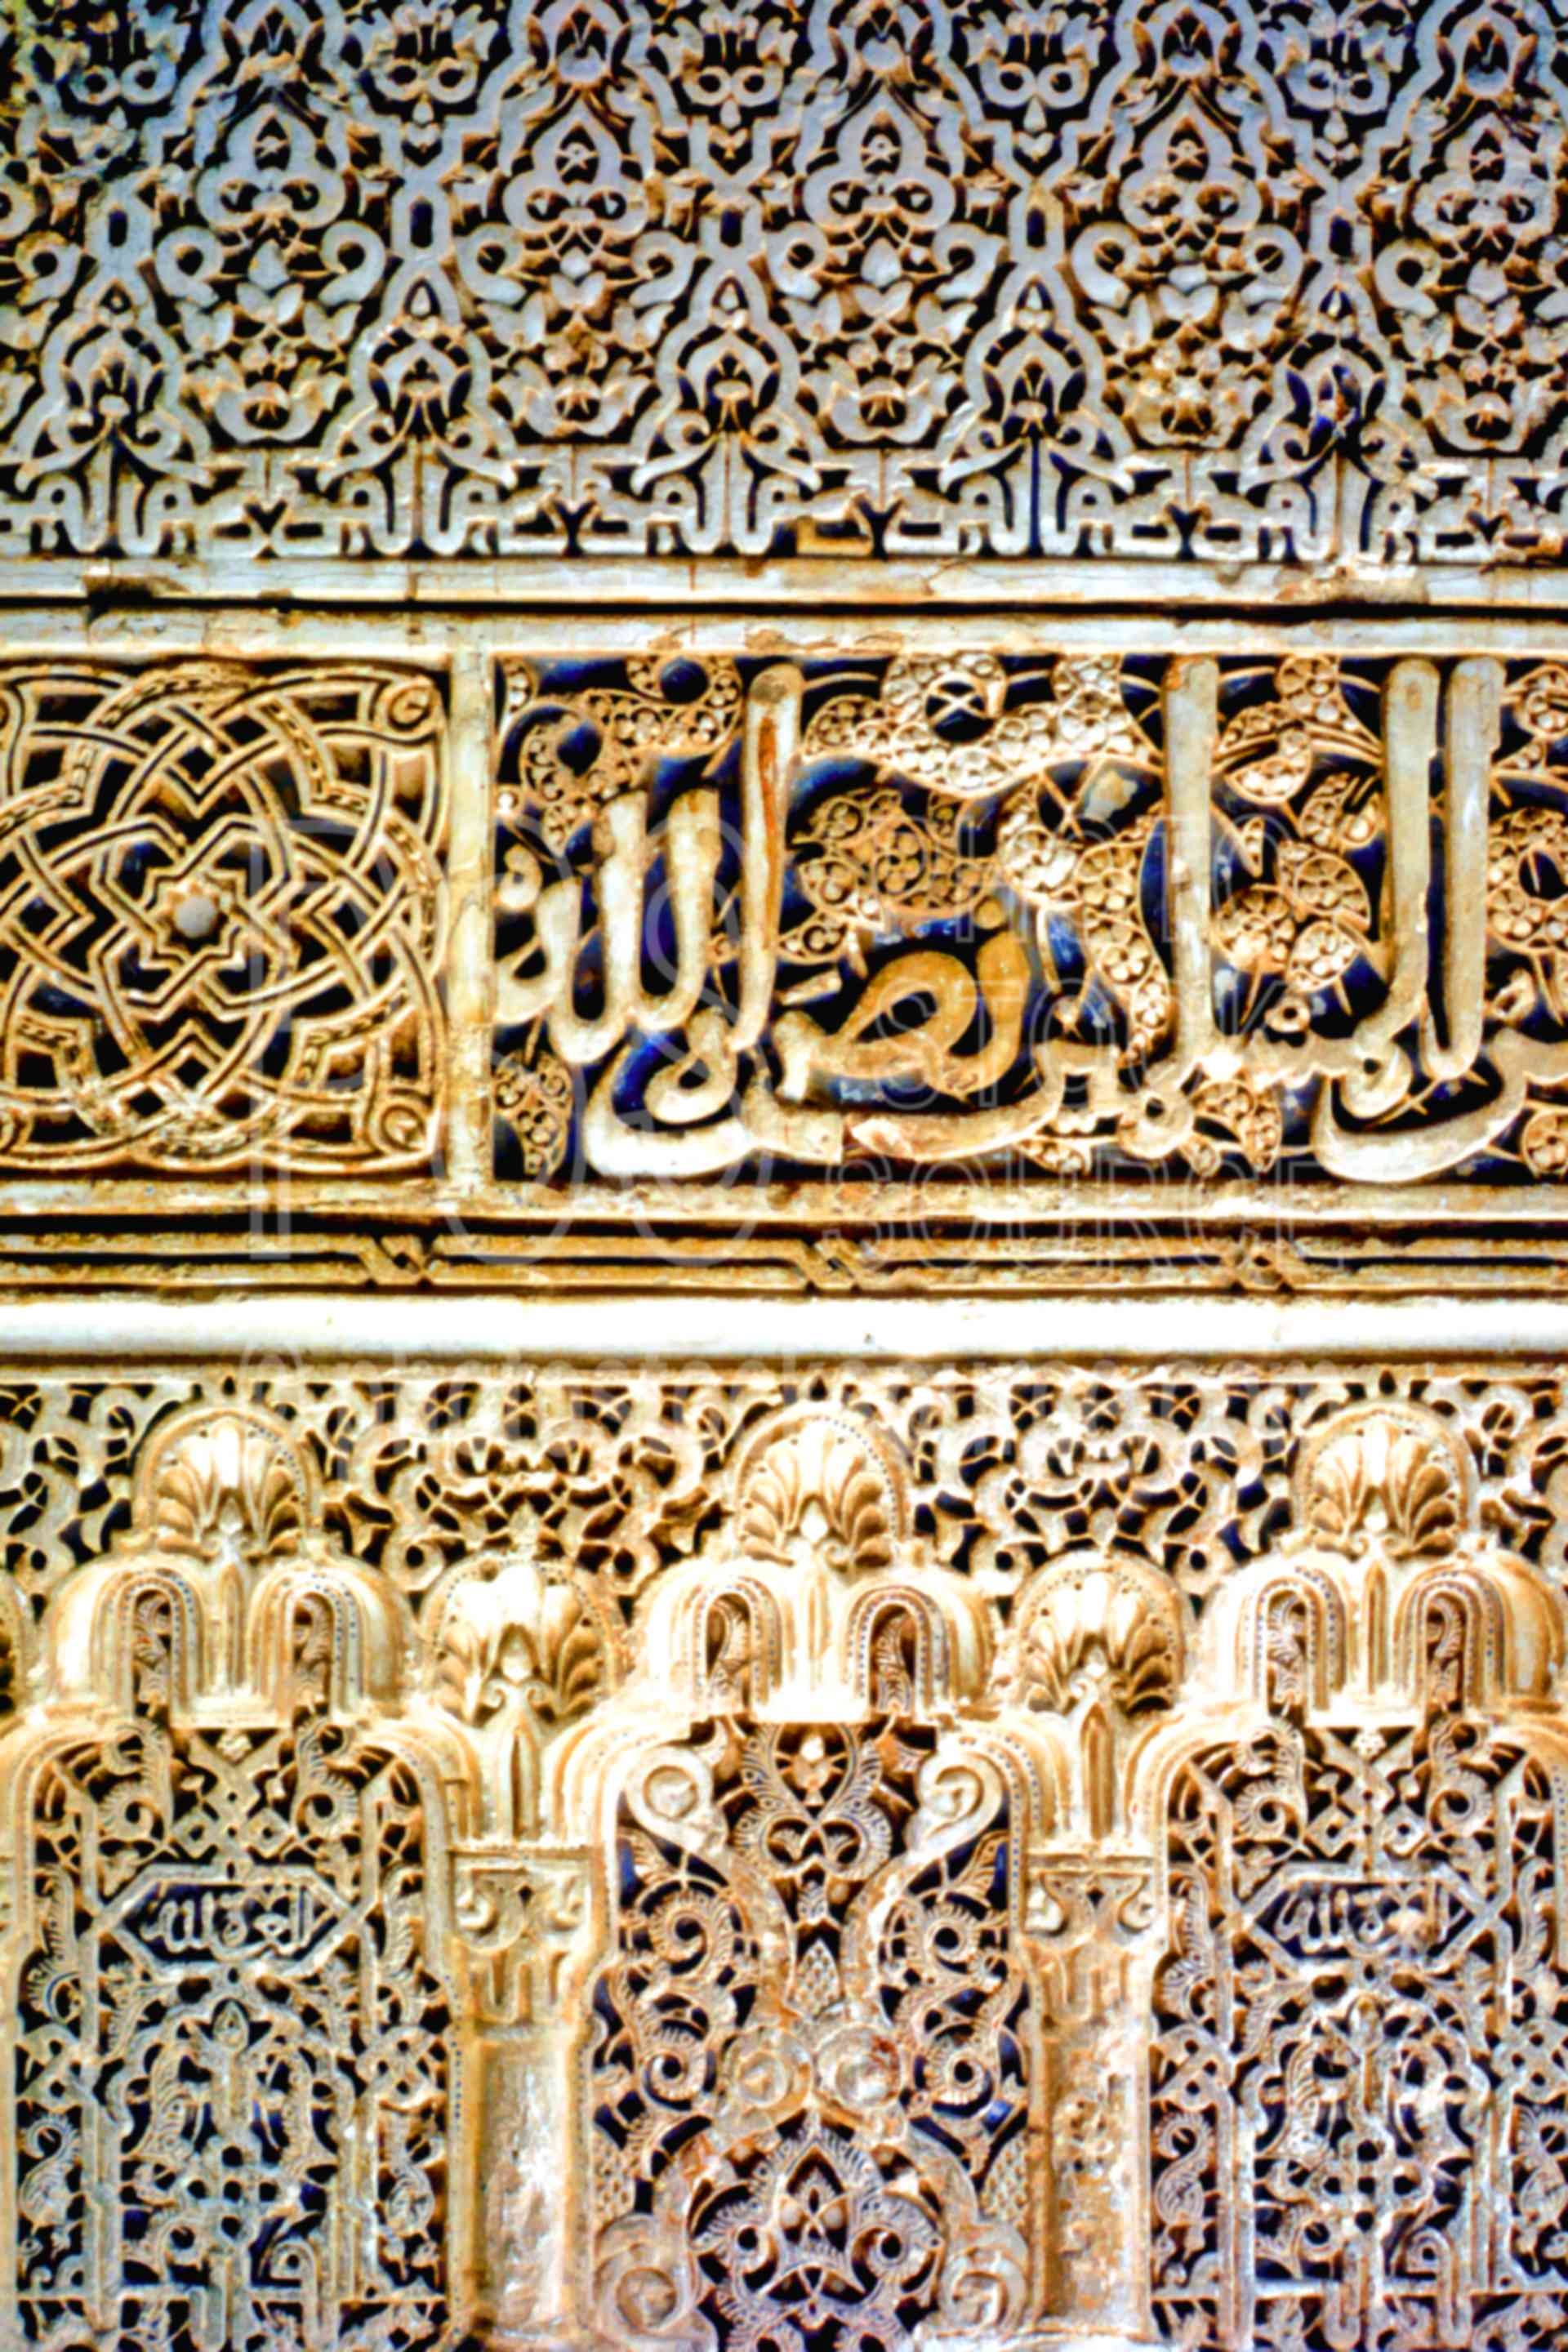 Detail,alhambra,carving,europe,arts,spain churches mosques